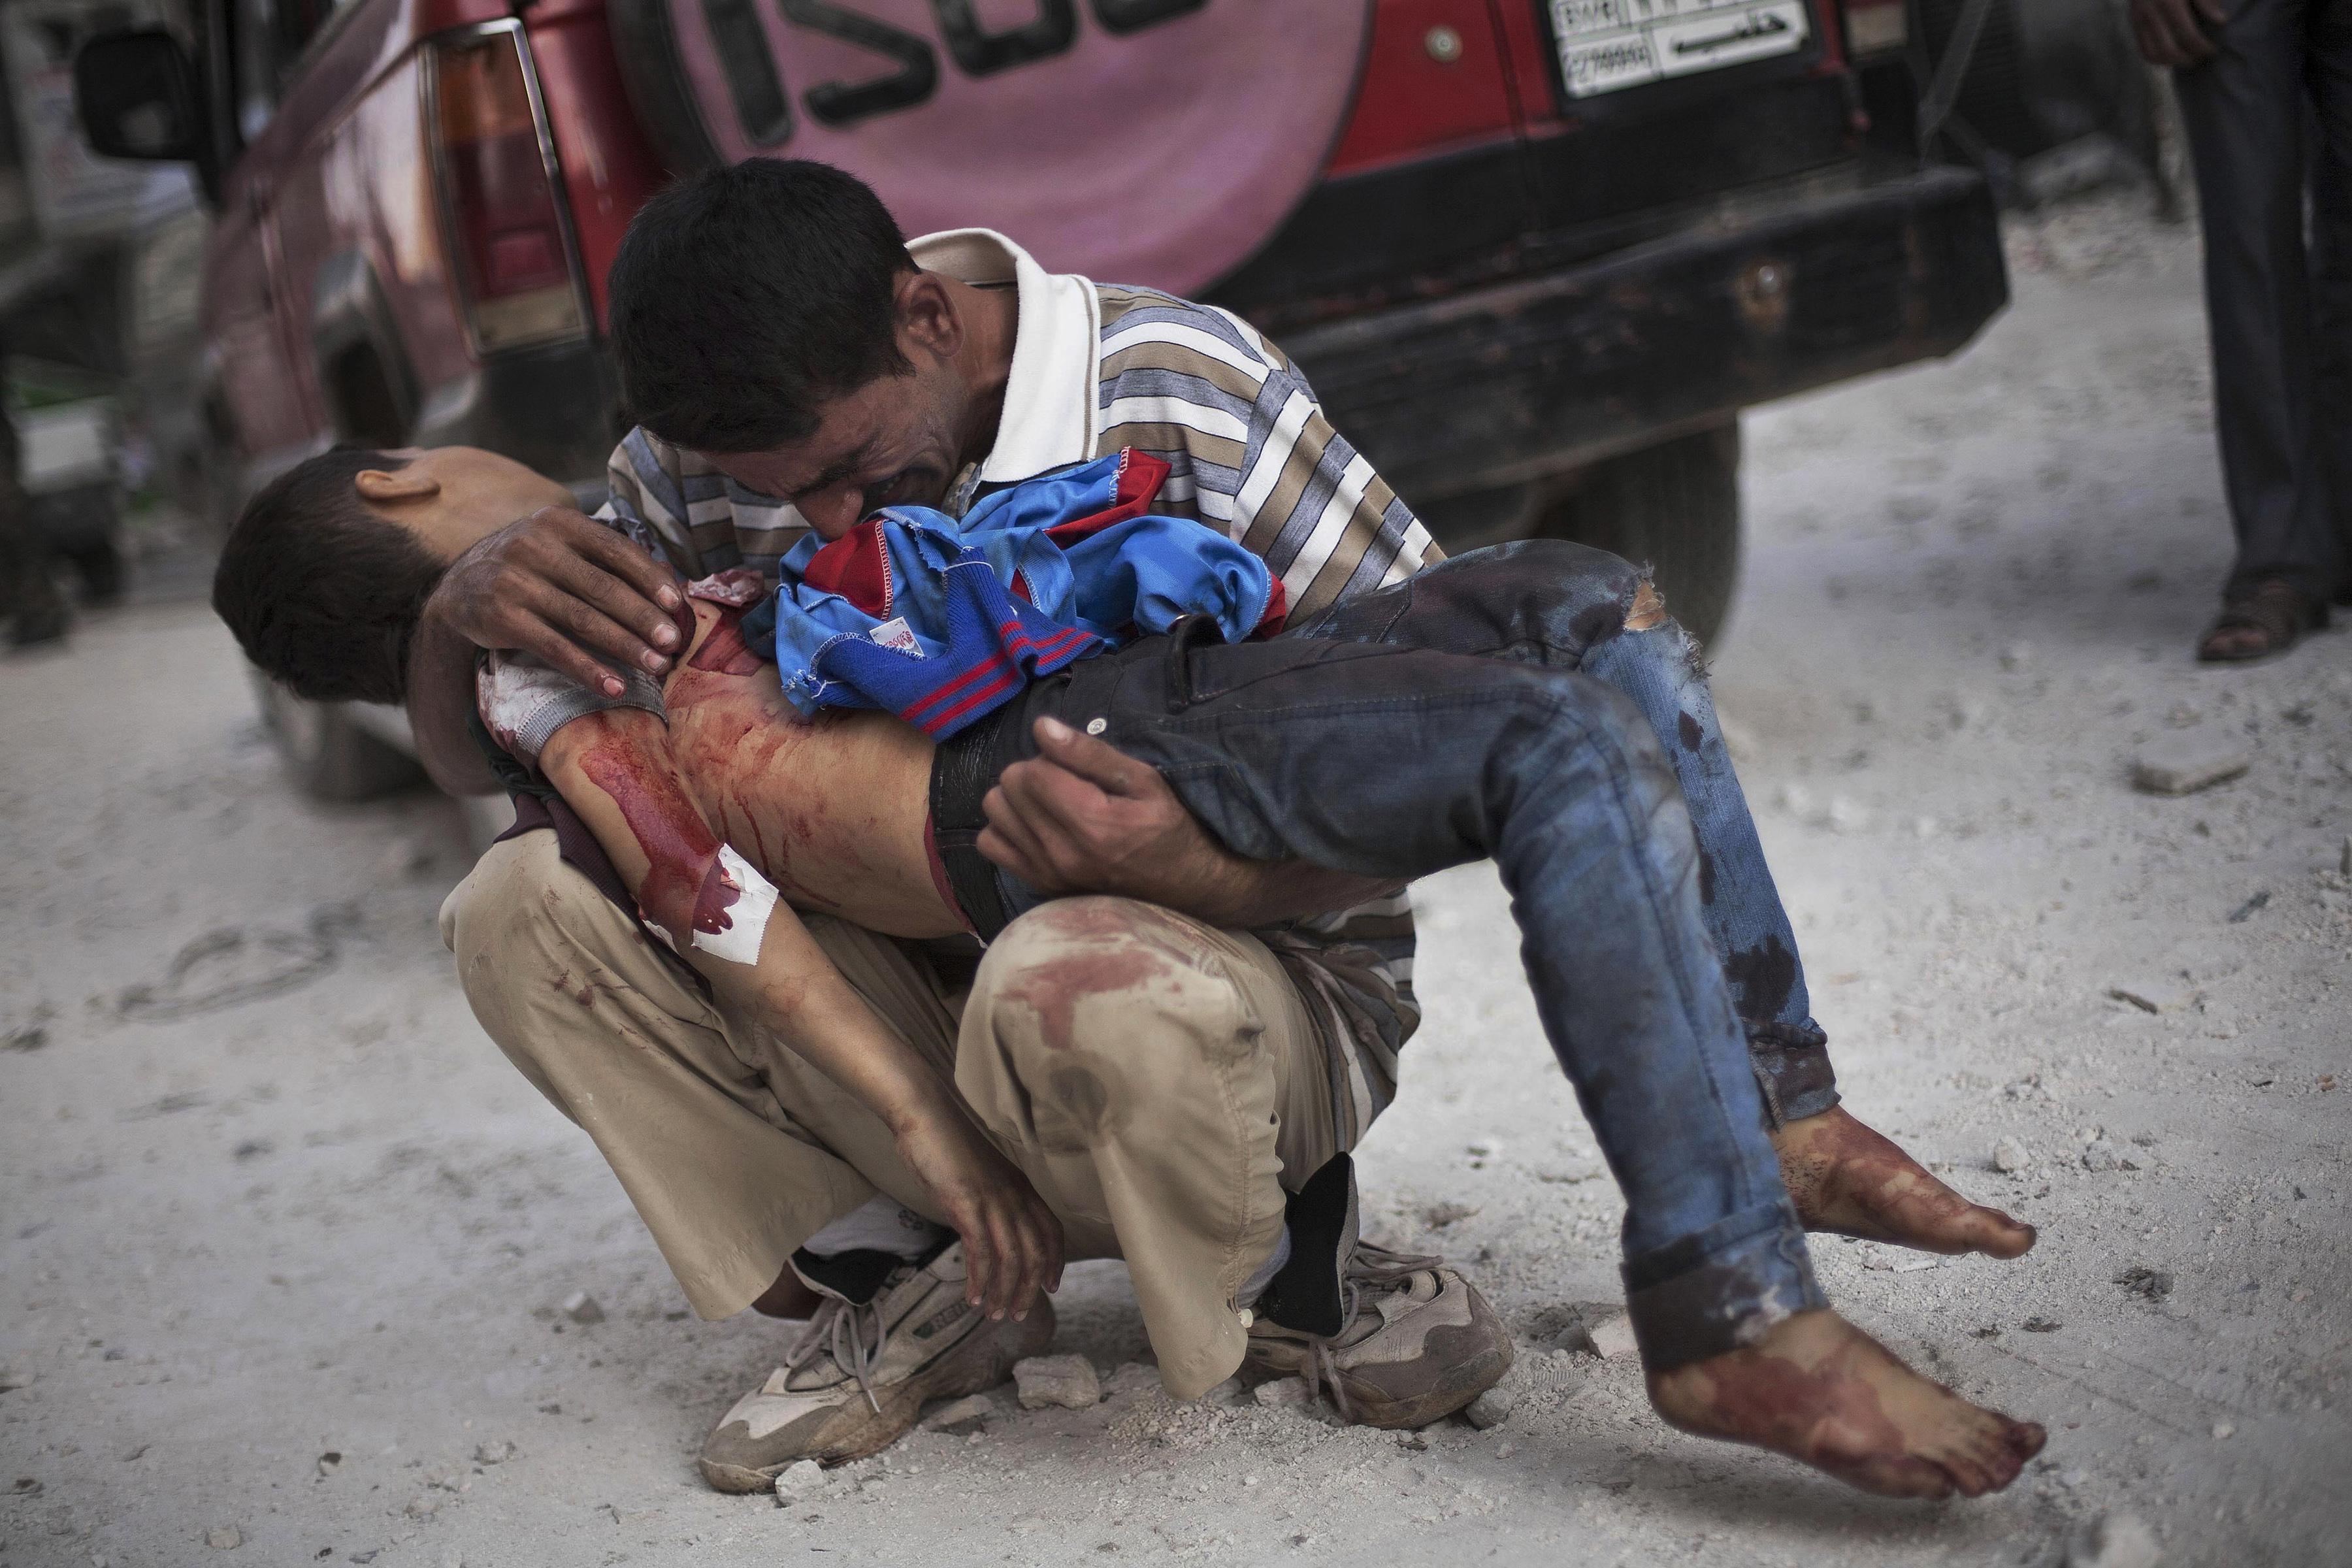 A Syrian man cries while holding the body of his son near Dar El Shifa hospital in Aleppo, Syria, Oct. 3, 2012. The boy was killed by the Syrian army. This image was one in a series of 20 by AP photographers that won the 2013 Pulitzer Prize in Breaking News Photography. (AP Photo/Manu Brabo)